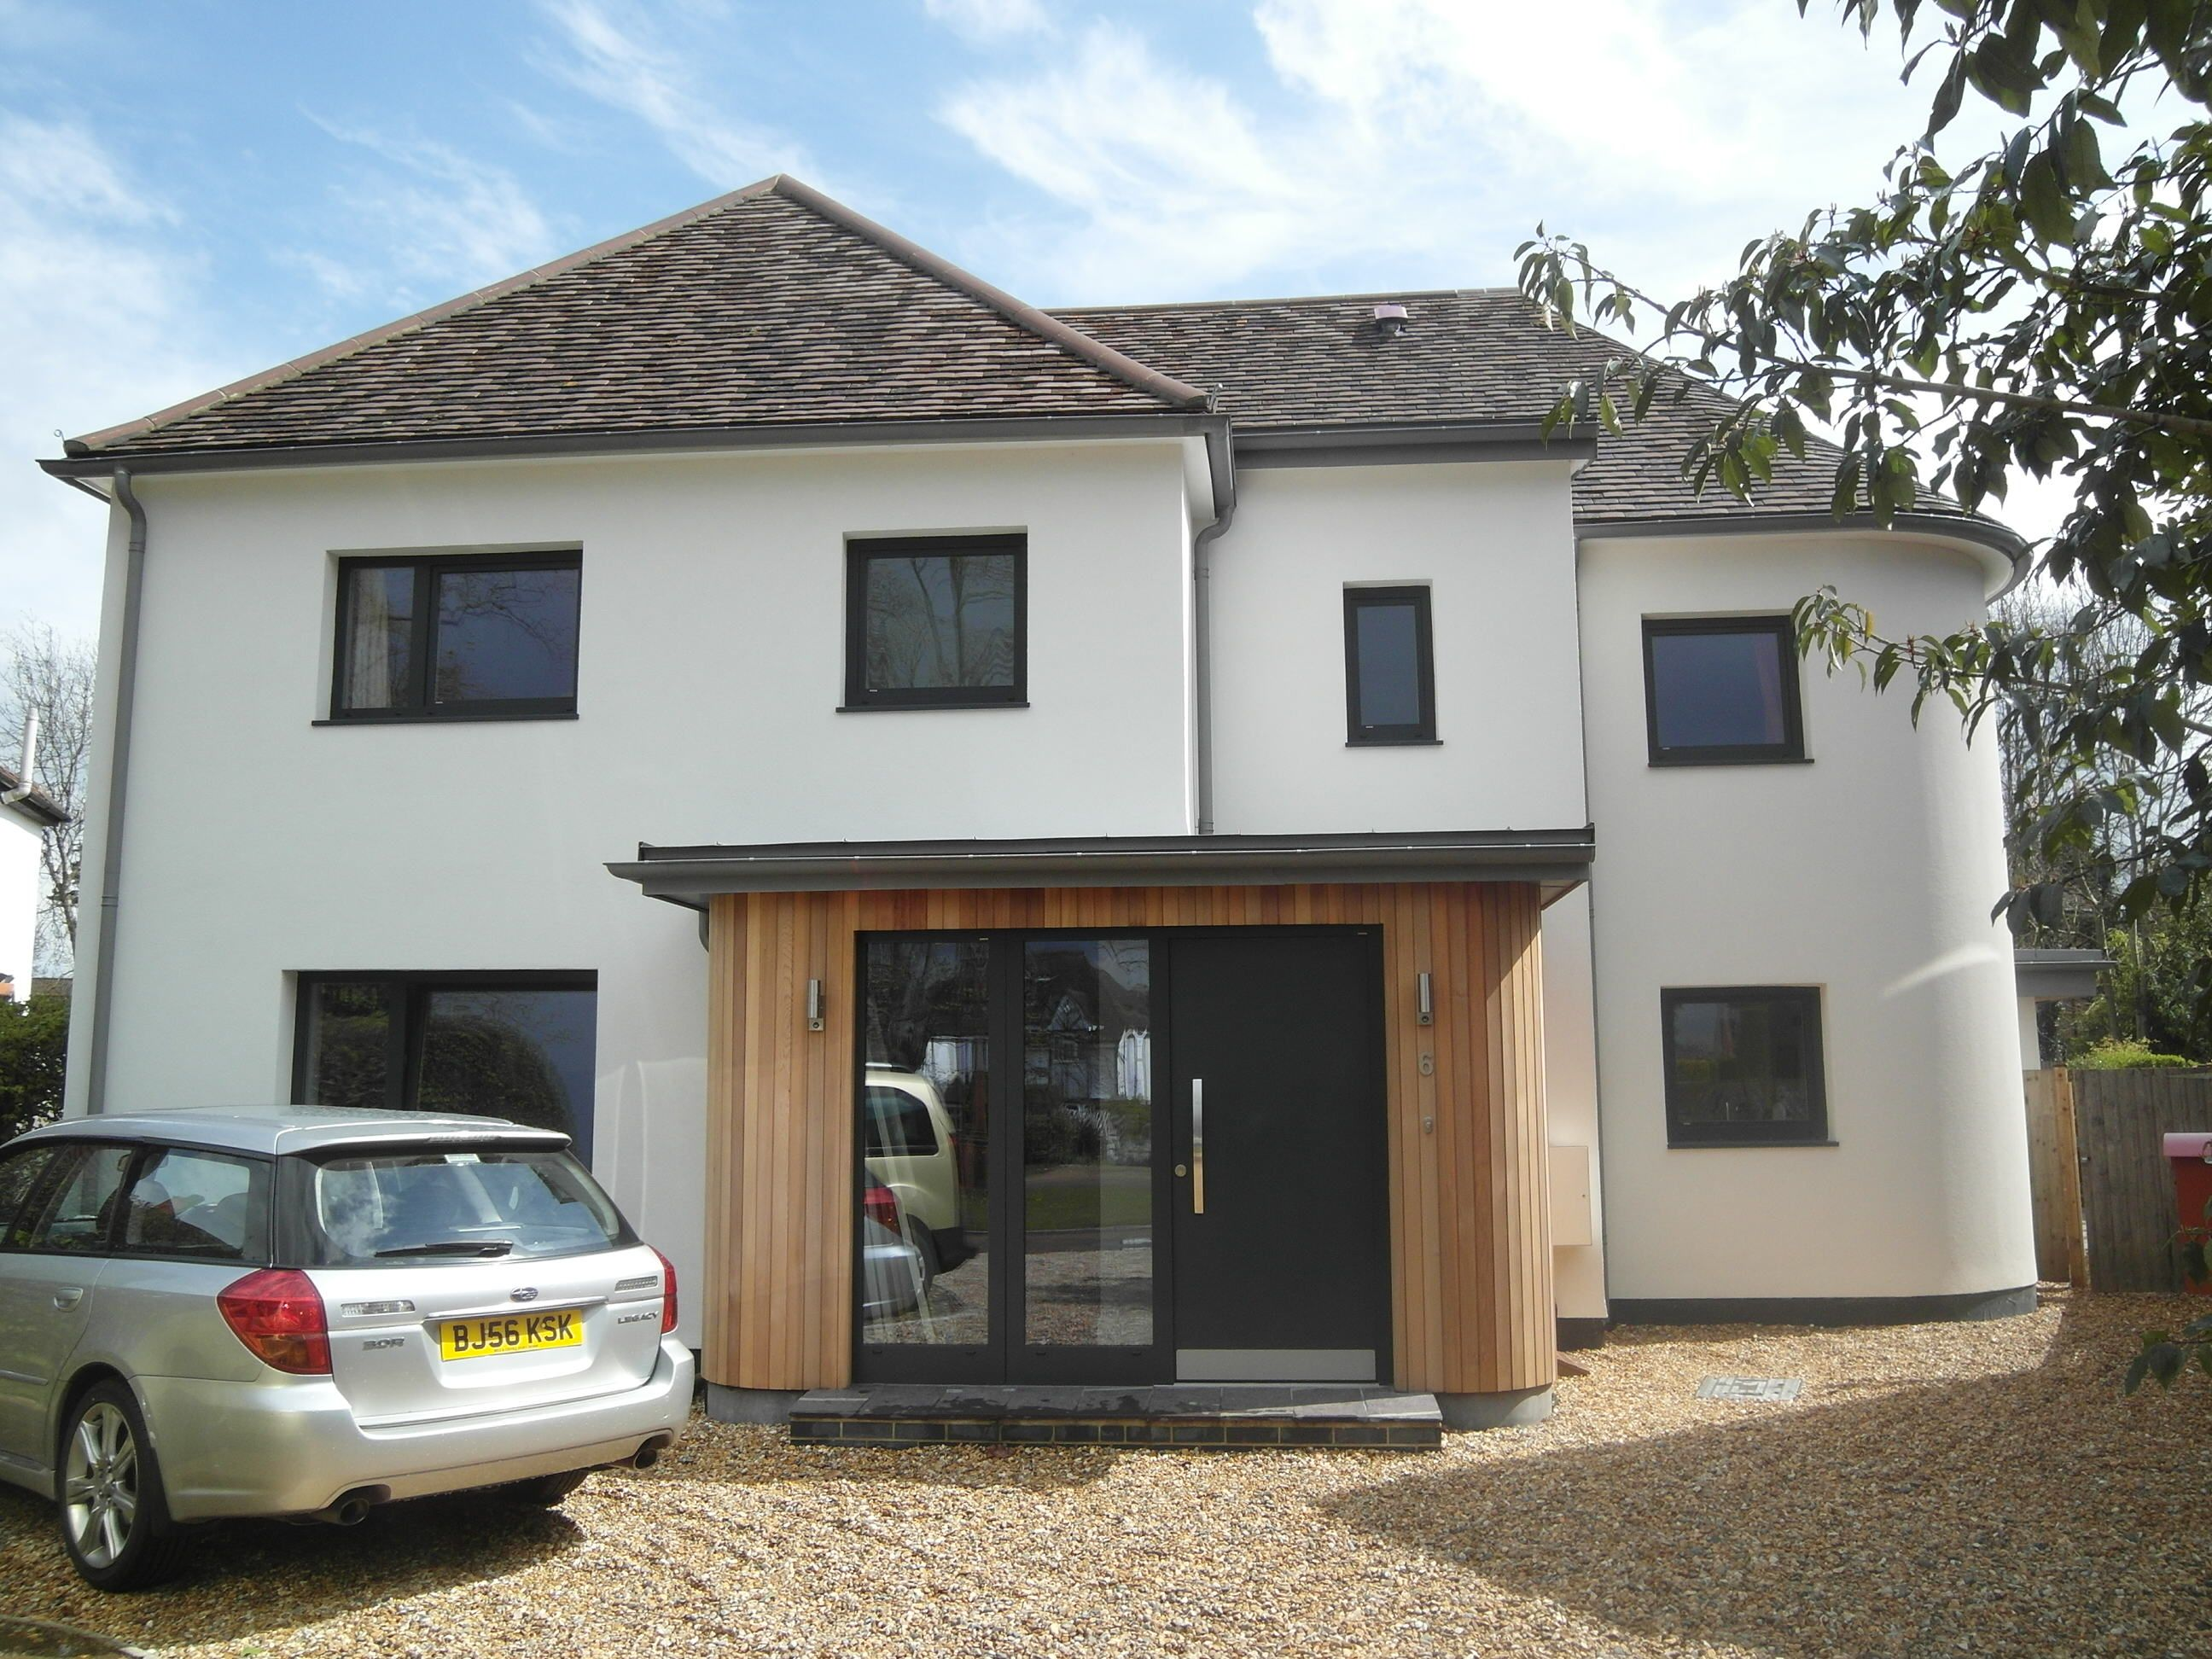 A 1930 detached house extended and refurbished using for Garage extension ideas